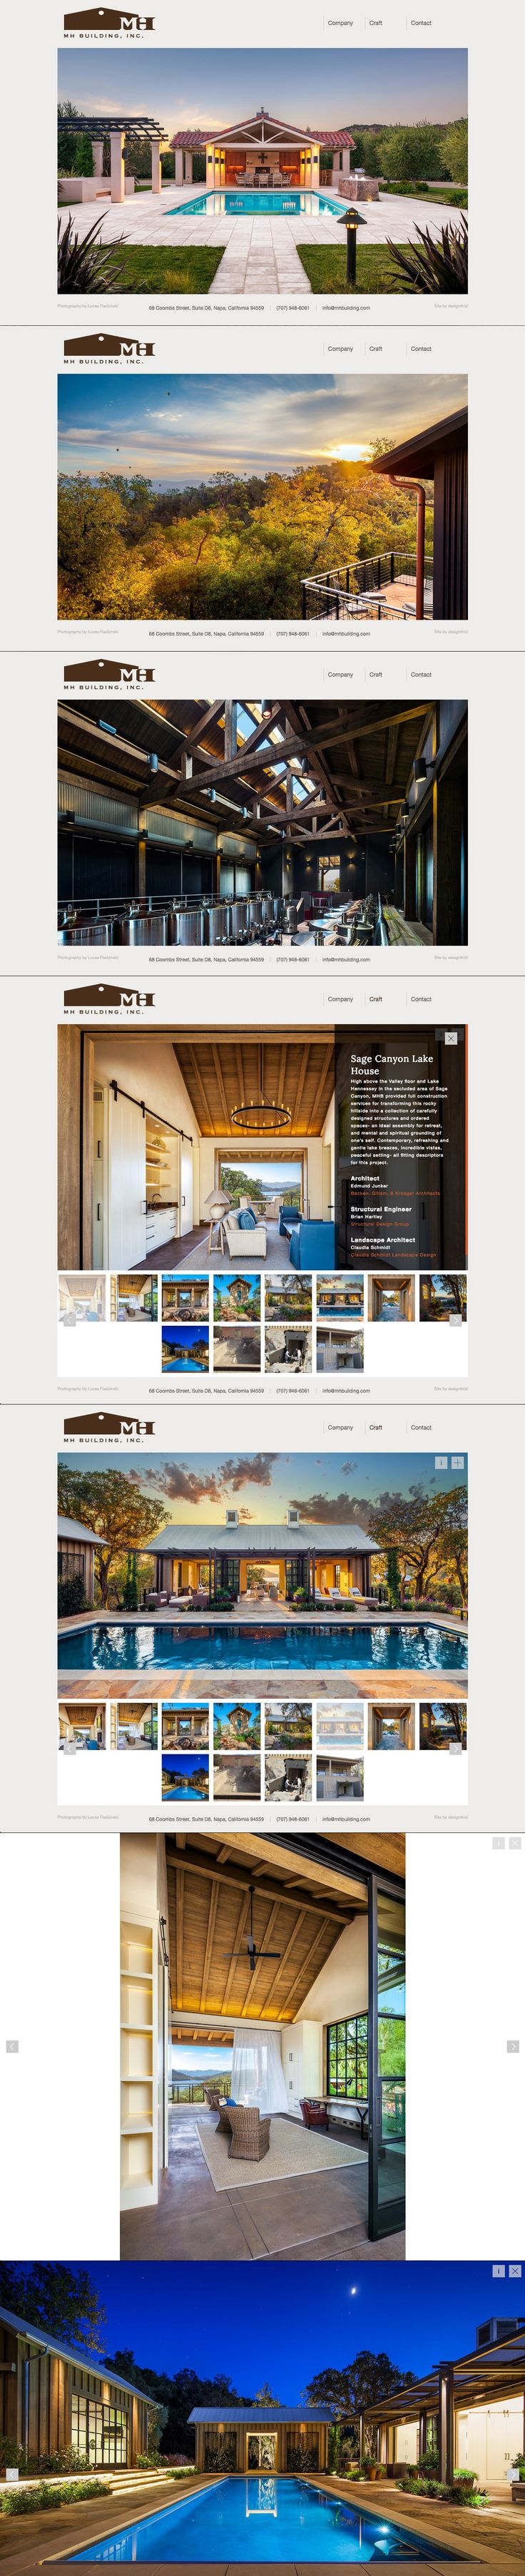 MH Building, Inc.   Website   by designthis!